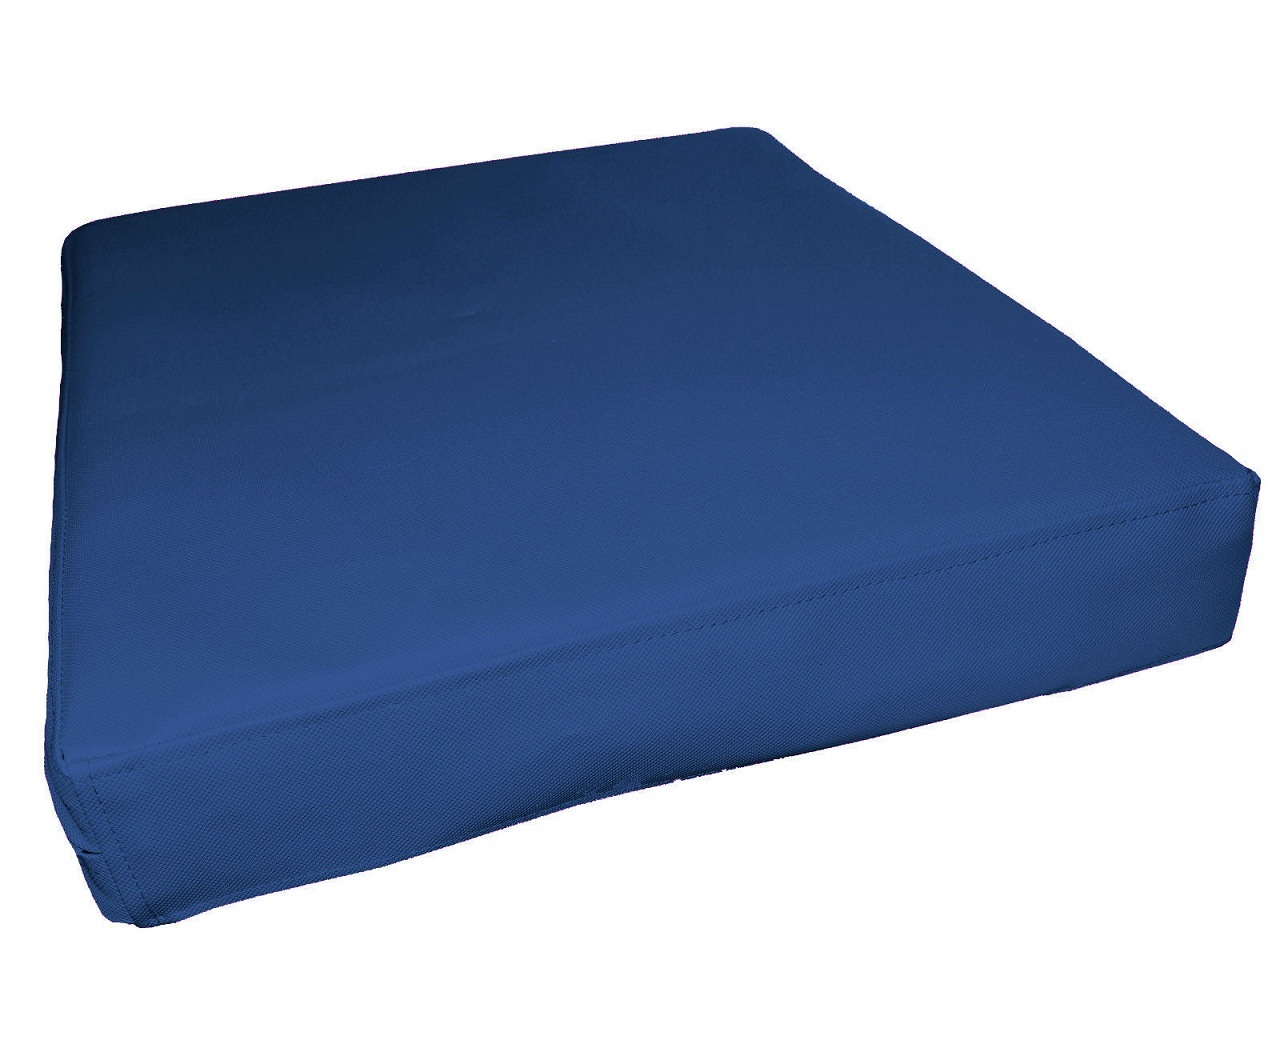 cushion_pad_small_blue_1280.jpg